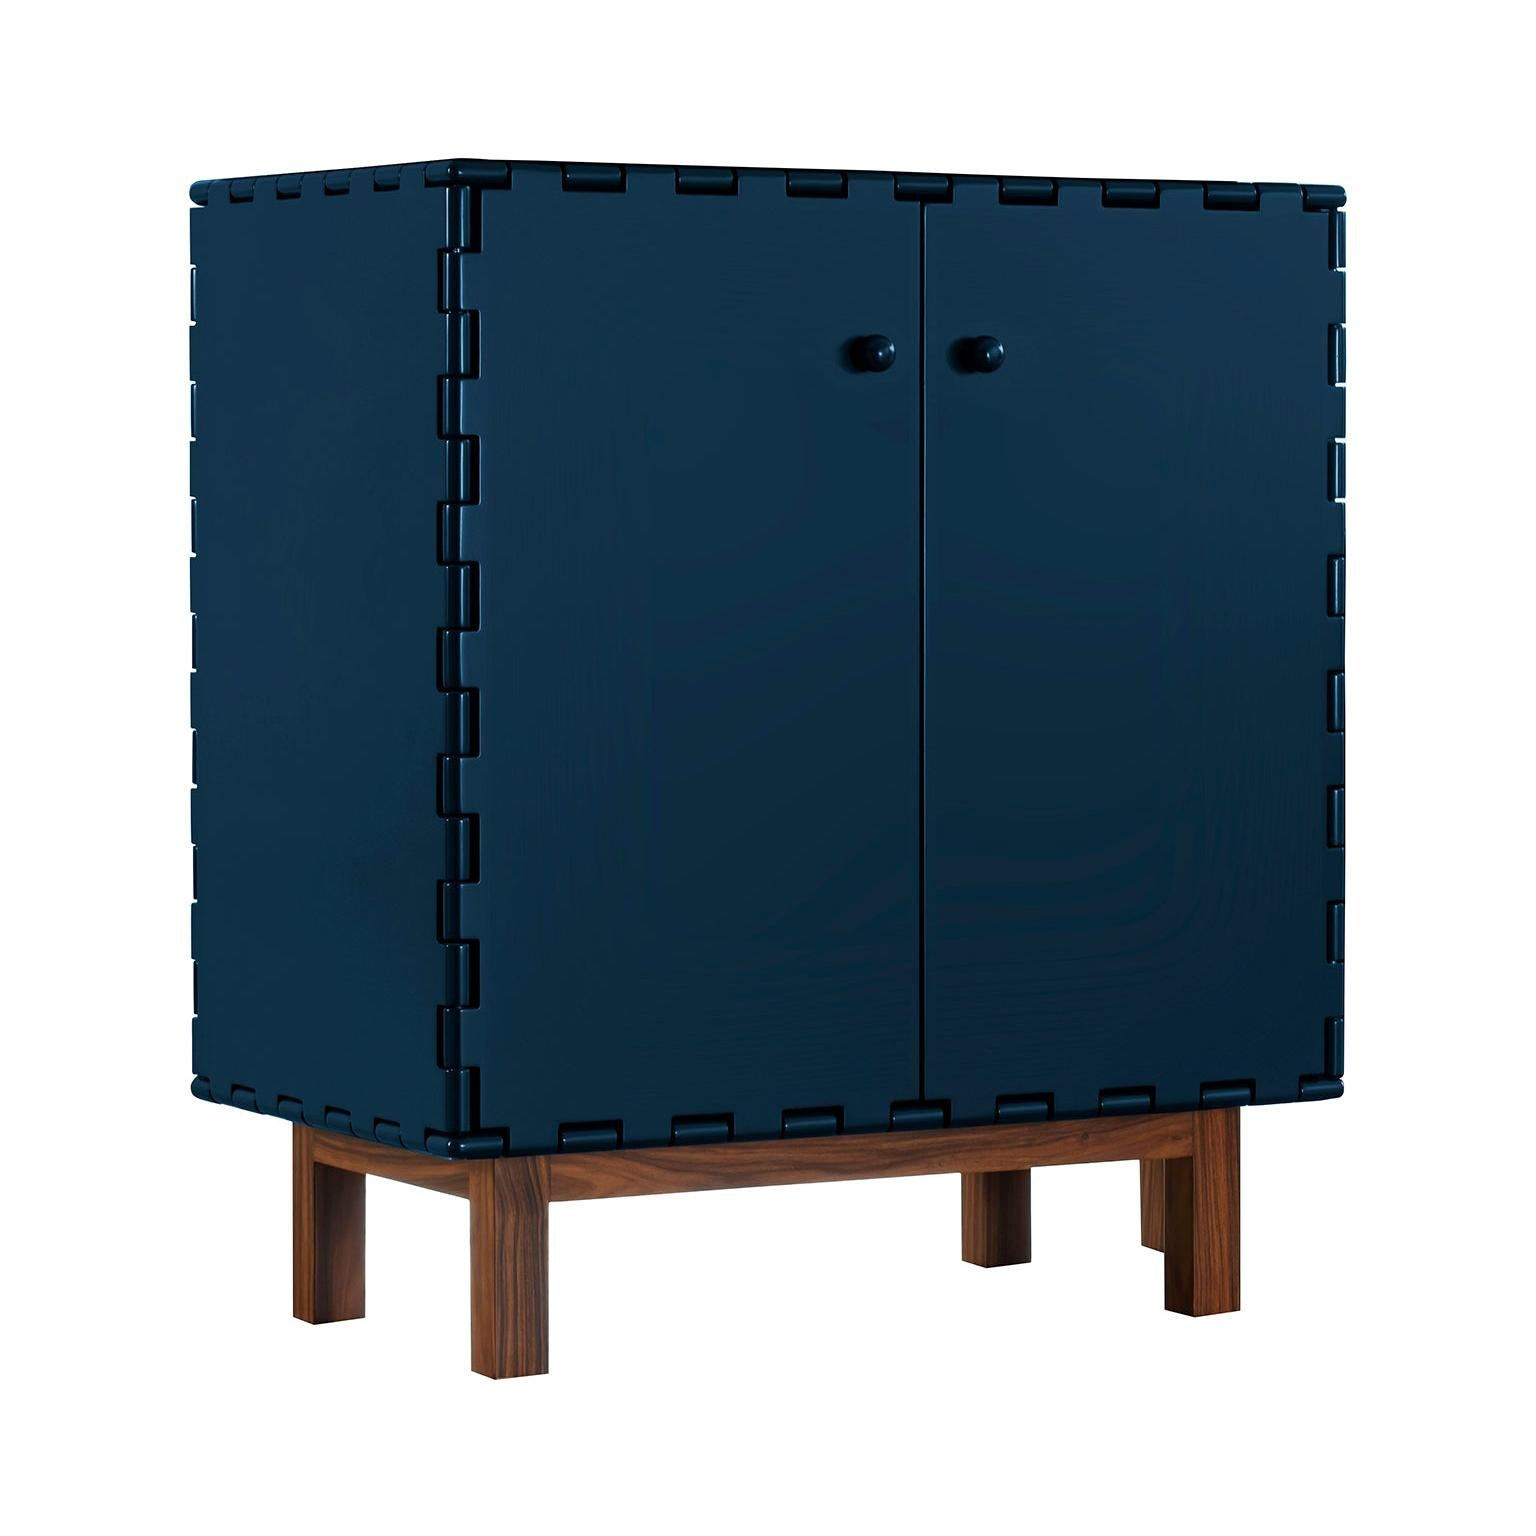 Finest Handcrafted Lacquered Interlocking Wood Panels Cabinet, Cabinet C